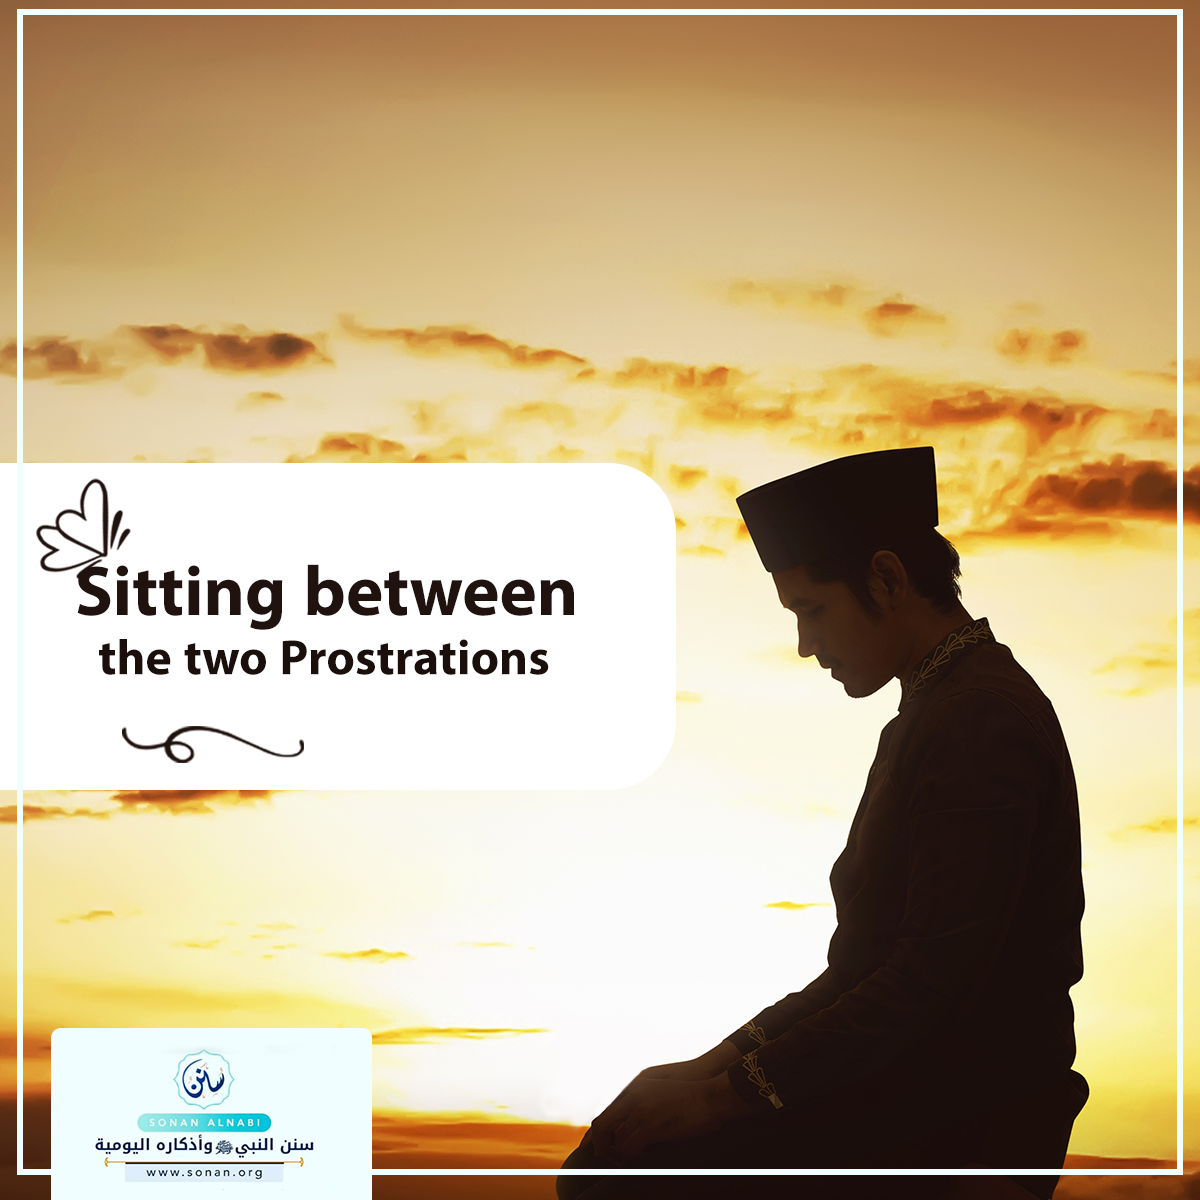 Sitting between the two Prostrations